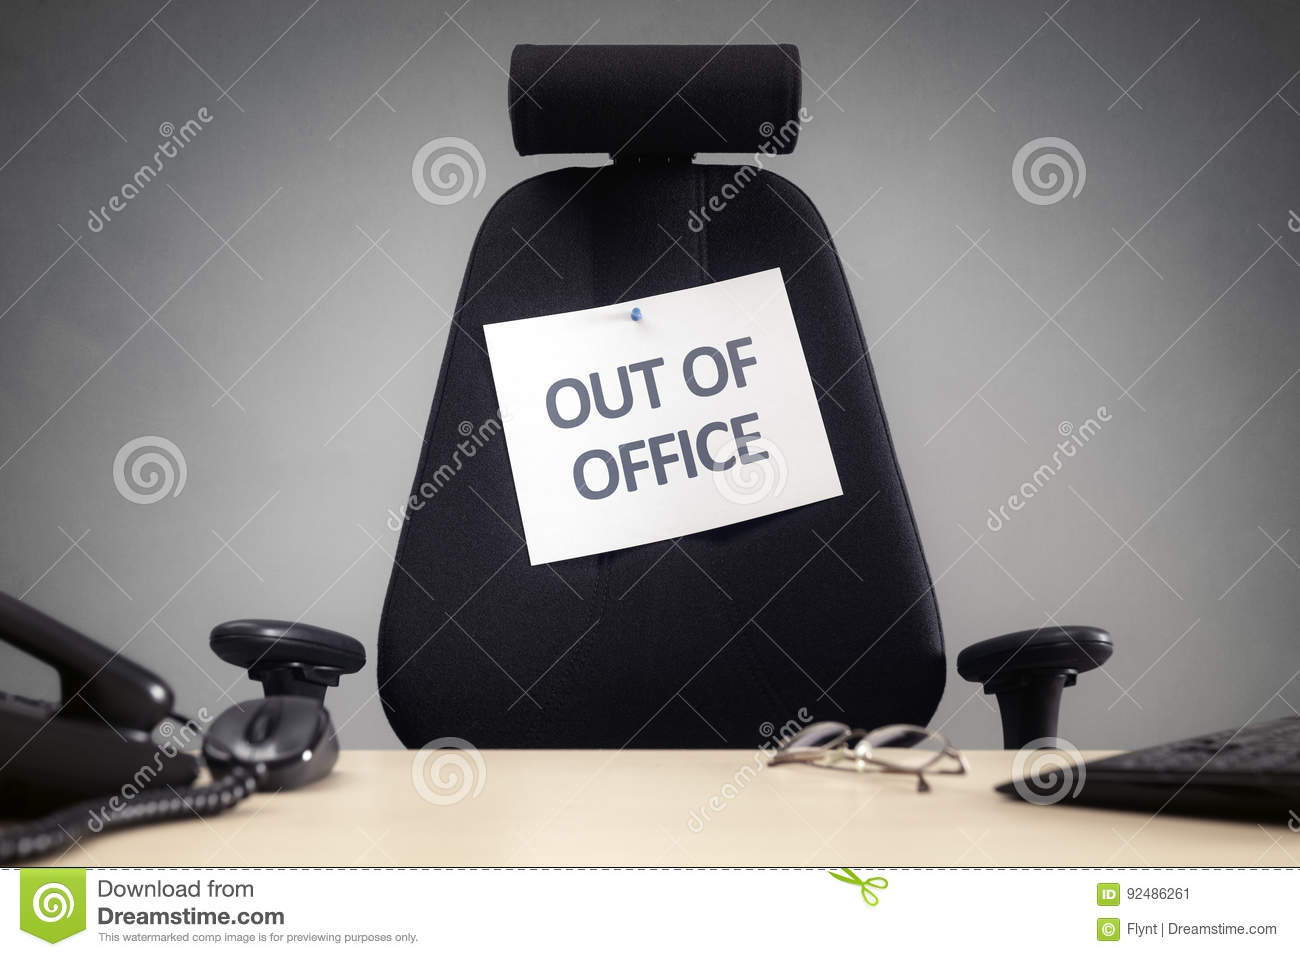 Business Chair With Out Of Office Sign Concept For Vacation Holiday Lunch Break Or Work Life Balance